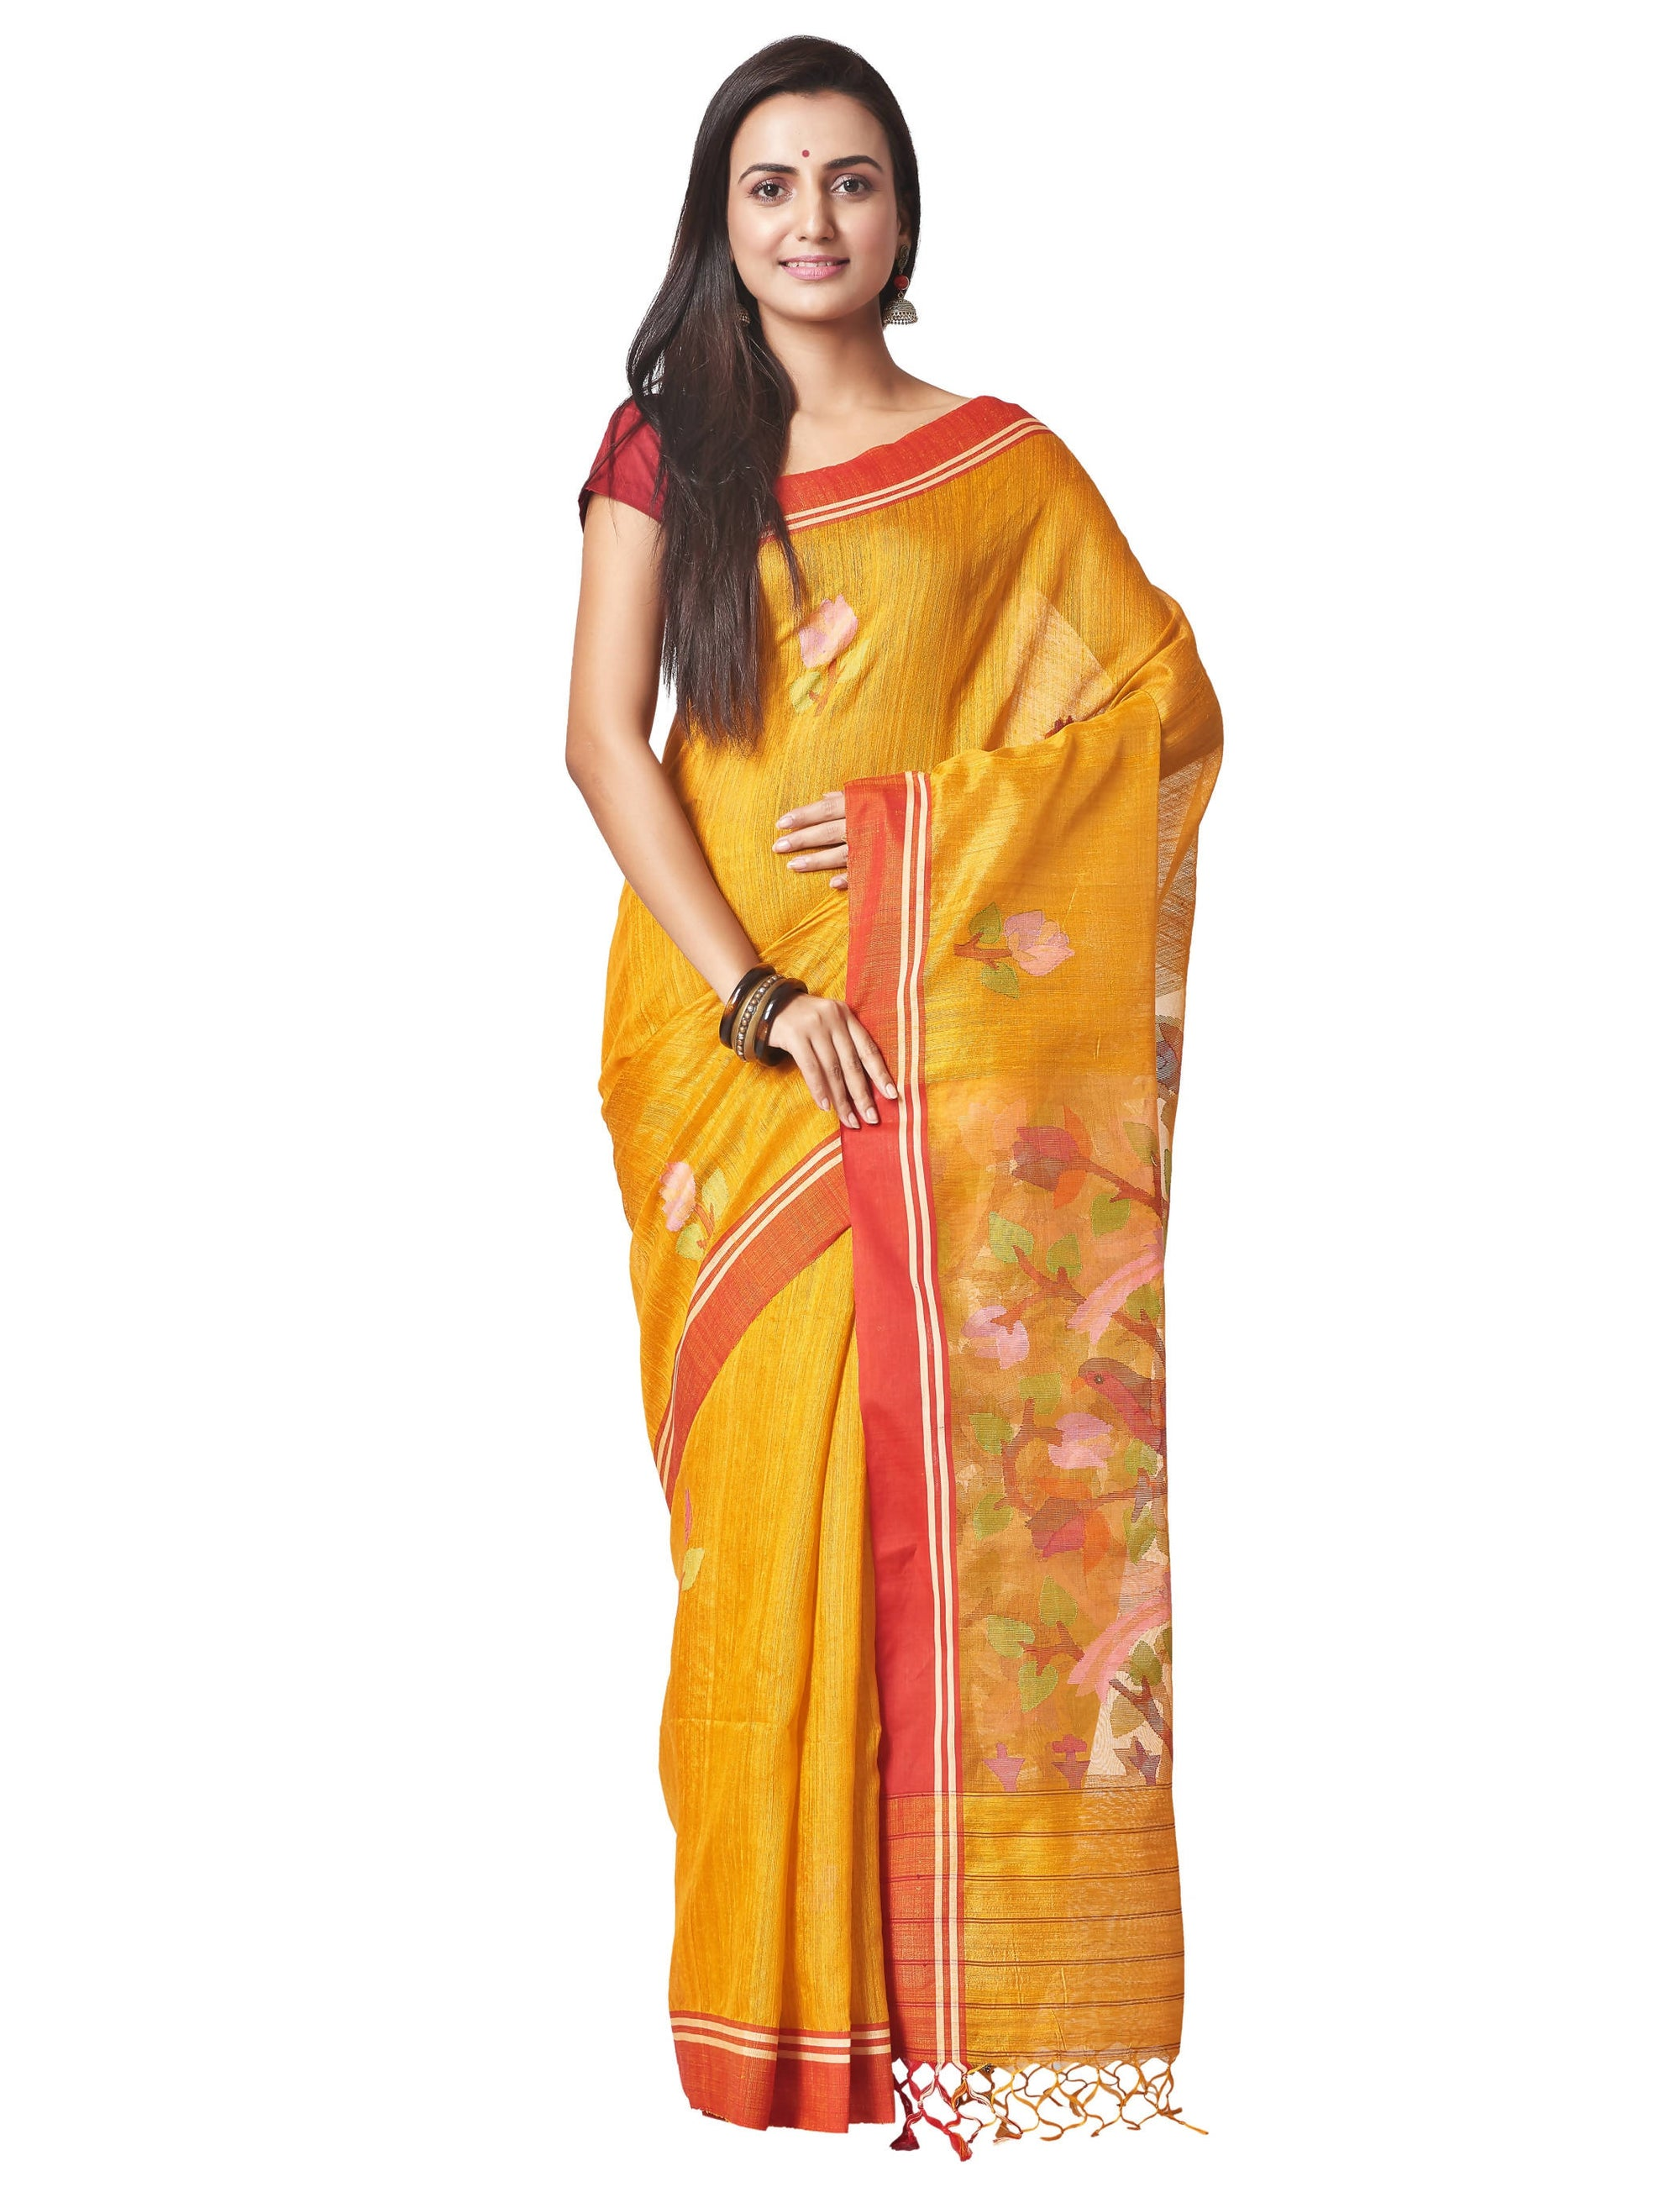 Biswa Bangla Handloom Matka Silk Jamdani Saree - Mustard Yellow